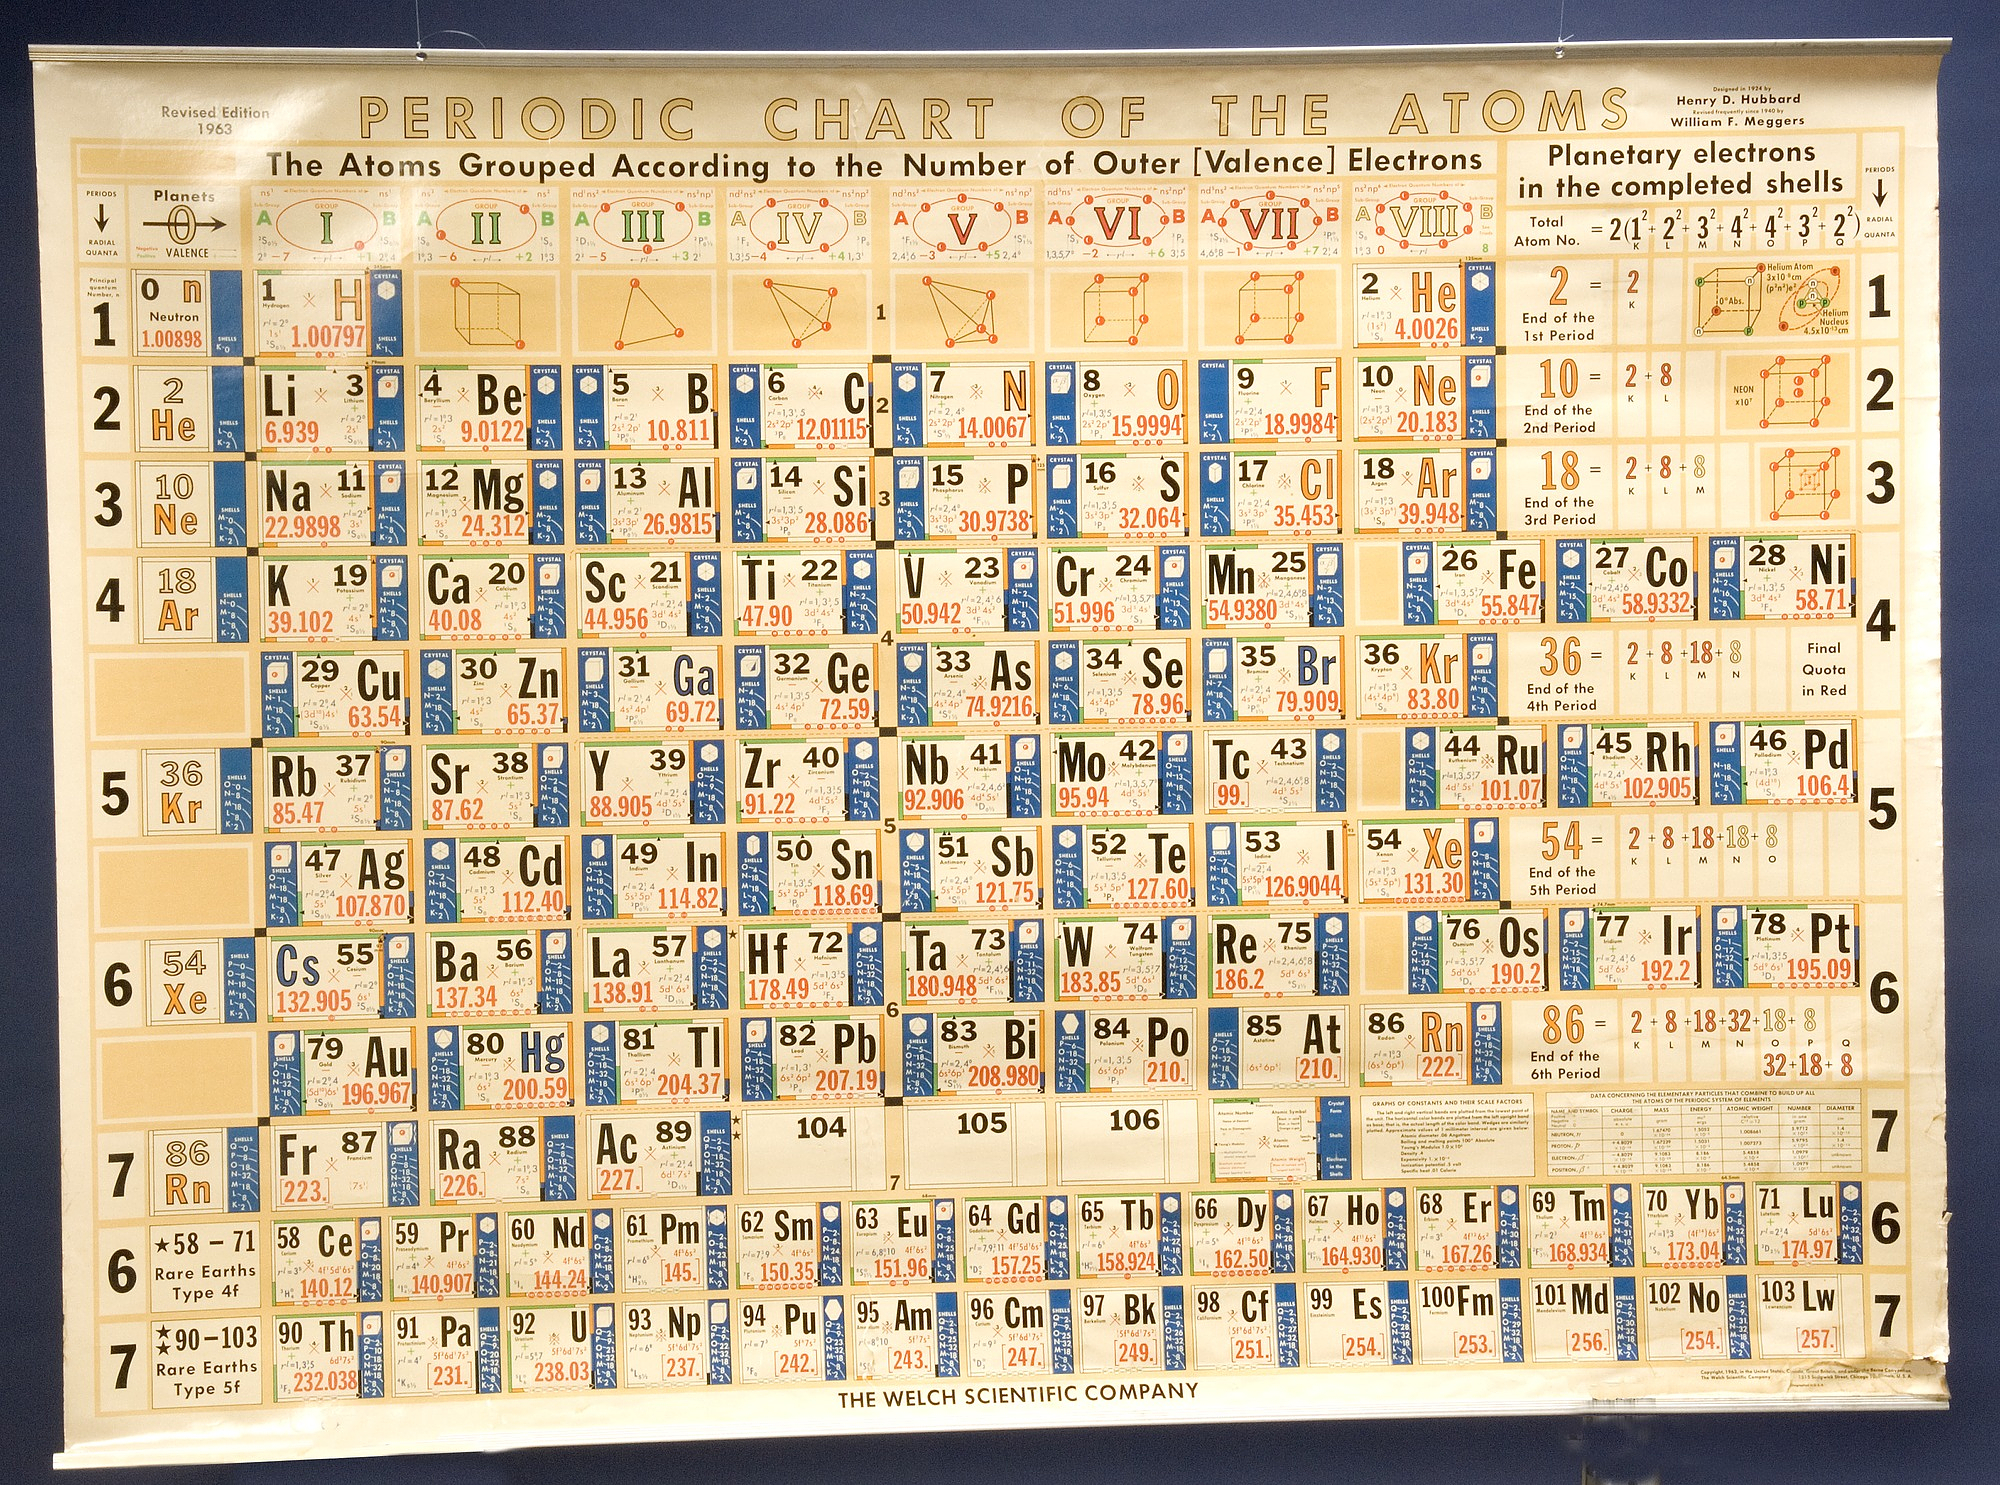 Times Table Chart 1 100: Hubbard7s Periodic Chart of the Atoms NMAH-2007-4685.jpg ,Chart